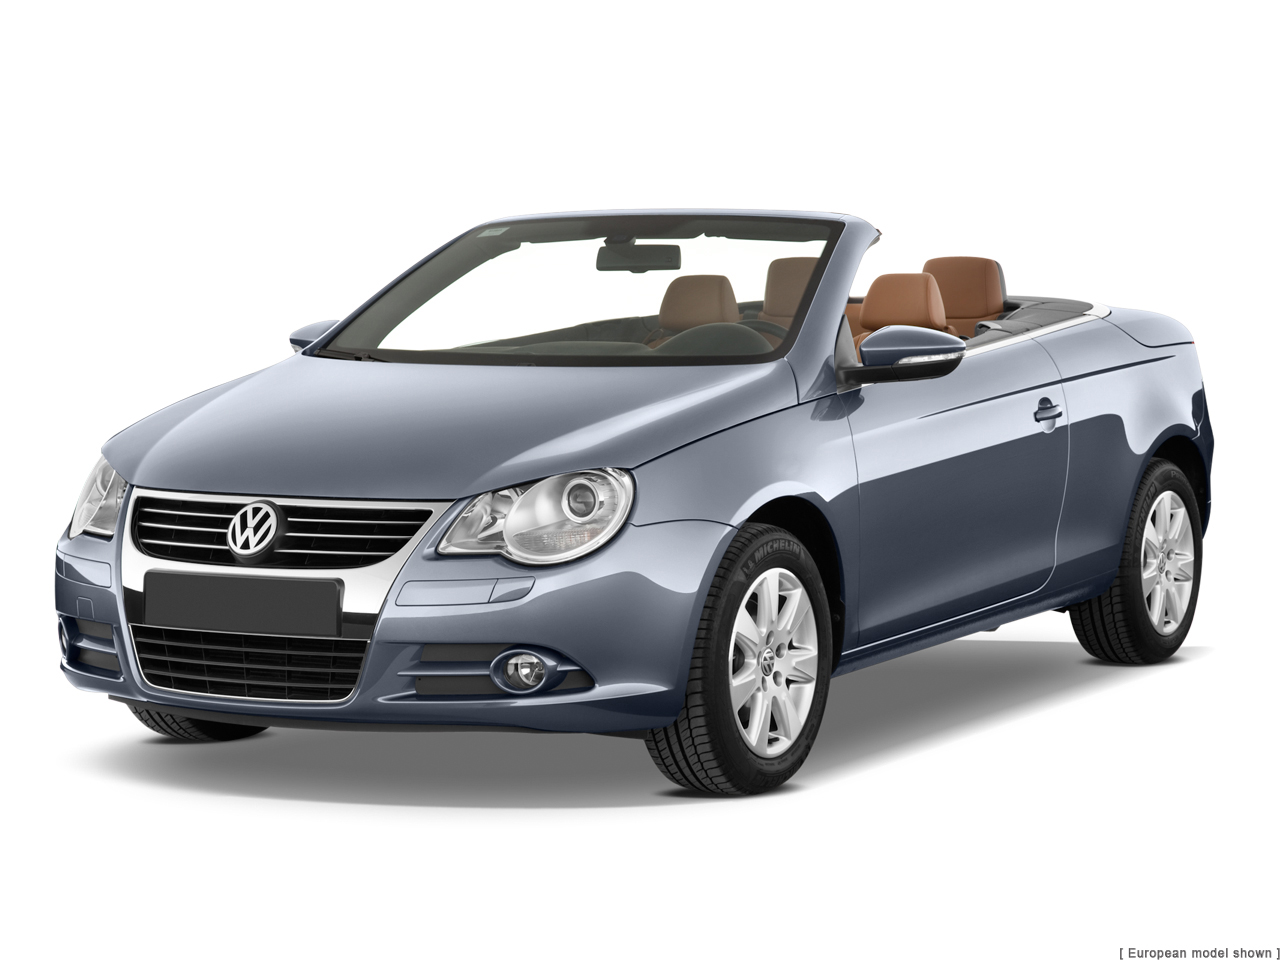 2011 volkswagen eos vw review and news motorauthority. Black Bedroom Furniture Sets. Home Design Ideas